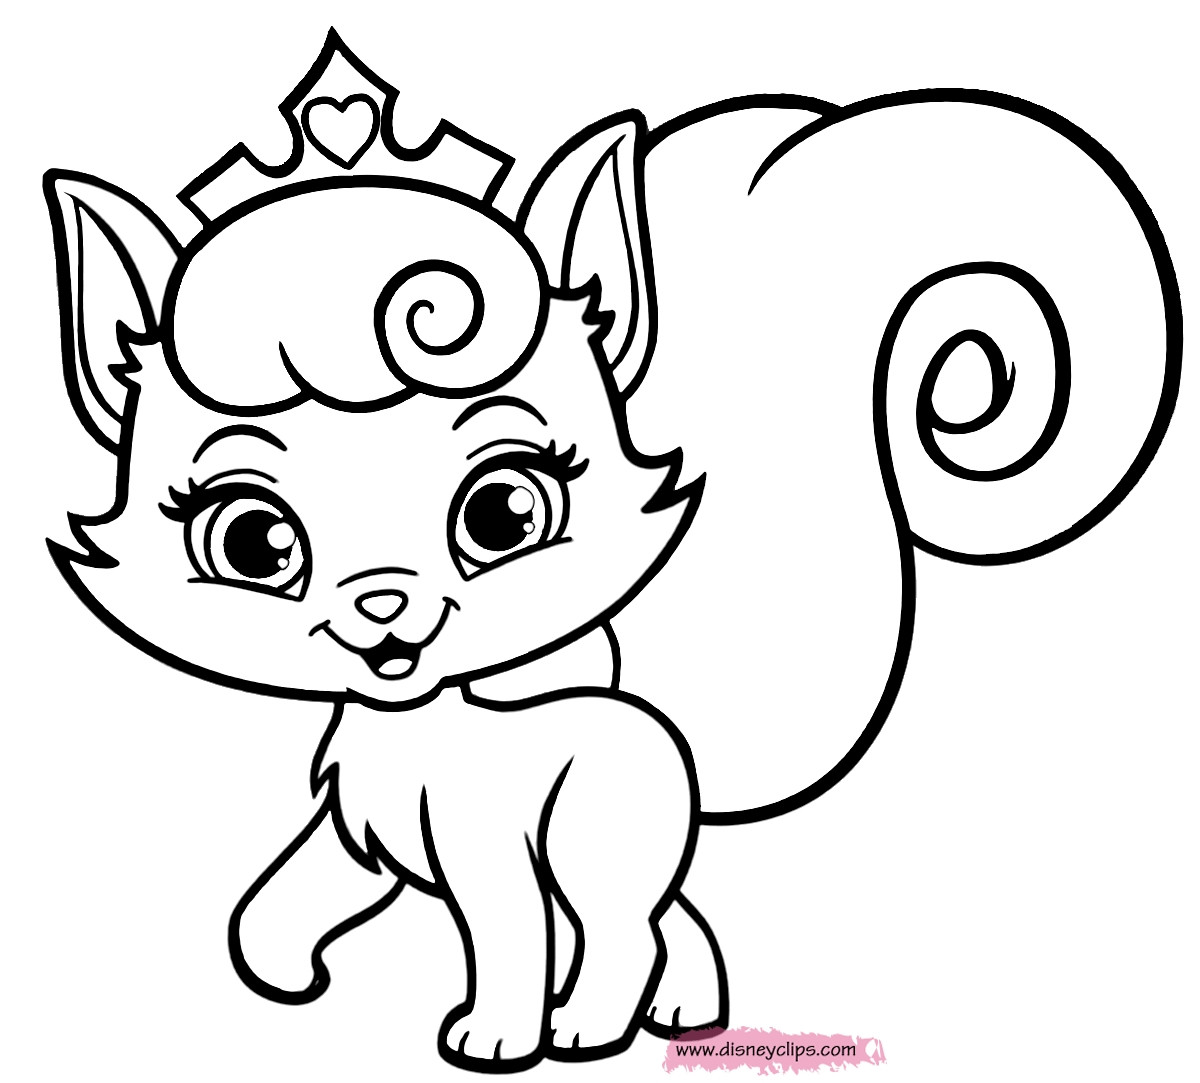 real kitty coloring pages free free kitty cat coloring pages download free clip art kitty real coloring pages